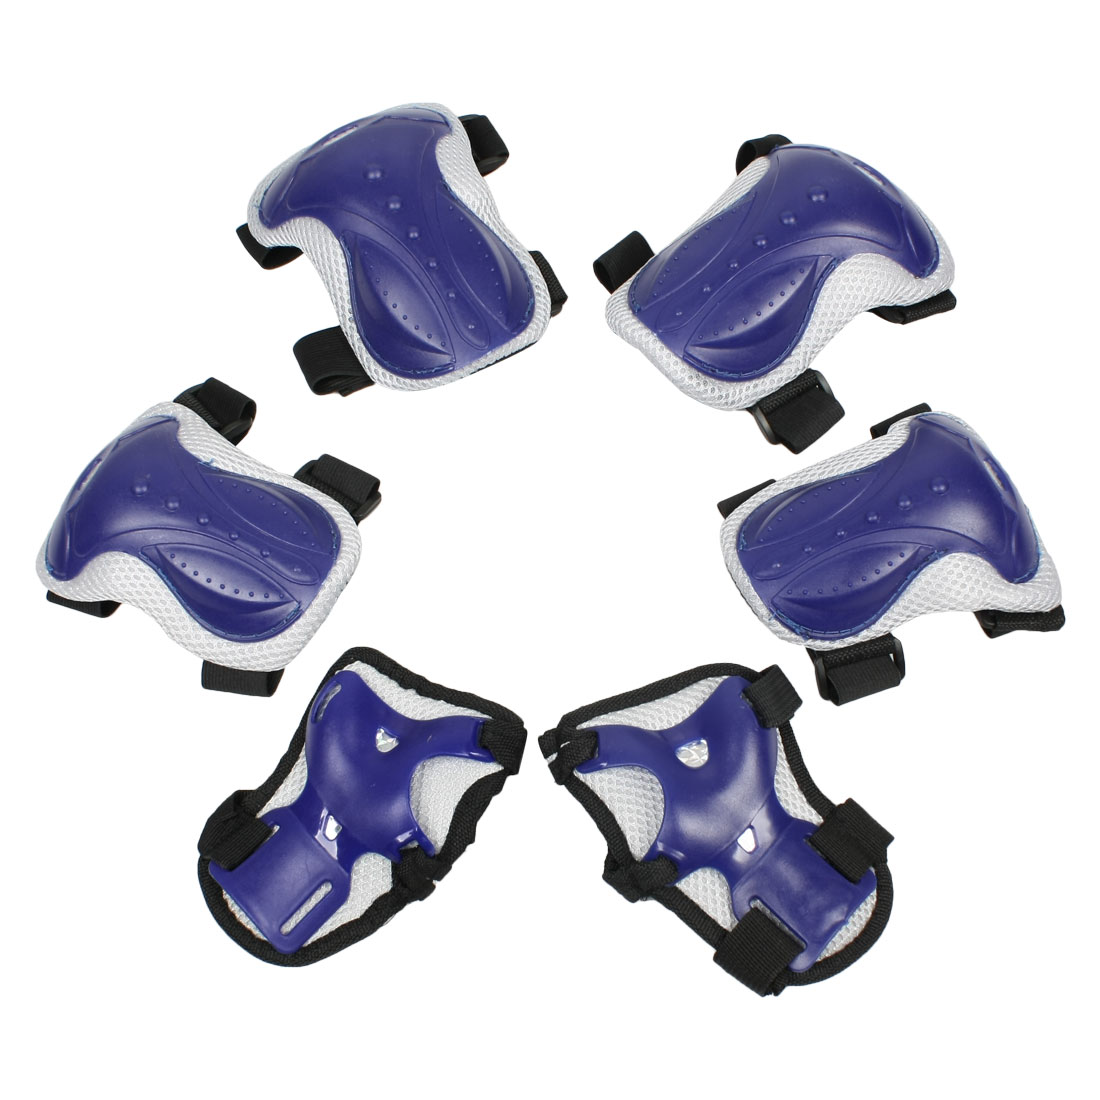 Set 6 in 1 Skating Palm Elbow Knee Support Protector Guard Blue Black for Child